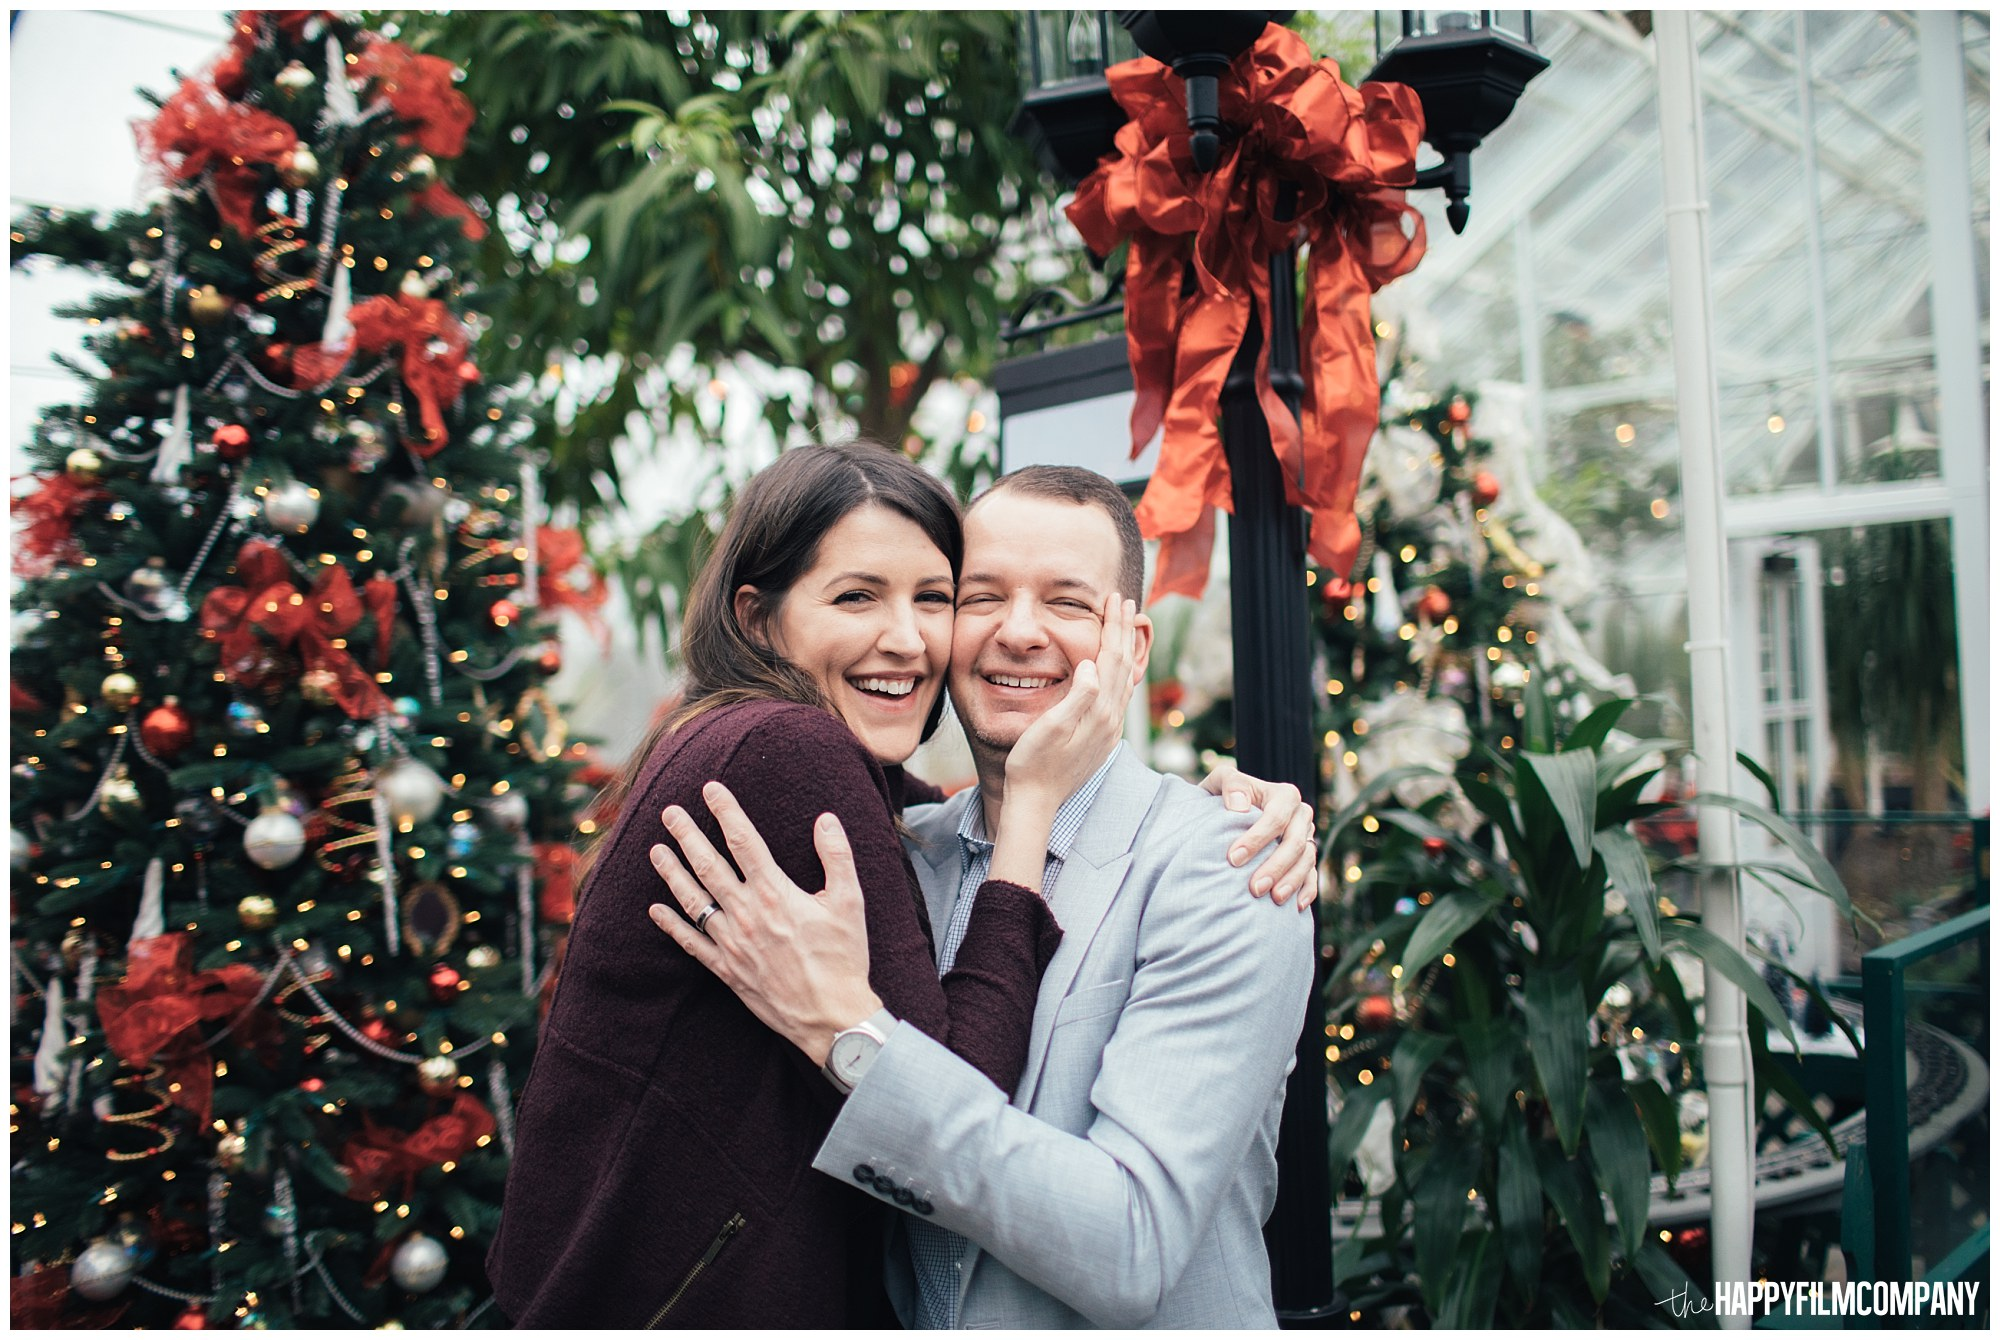 the Happy Film Company - Seattle Family Photos - Volunteer Park Conservatory - couples portraits holiday decorations background